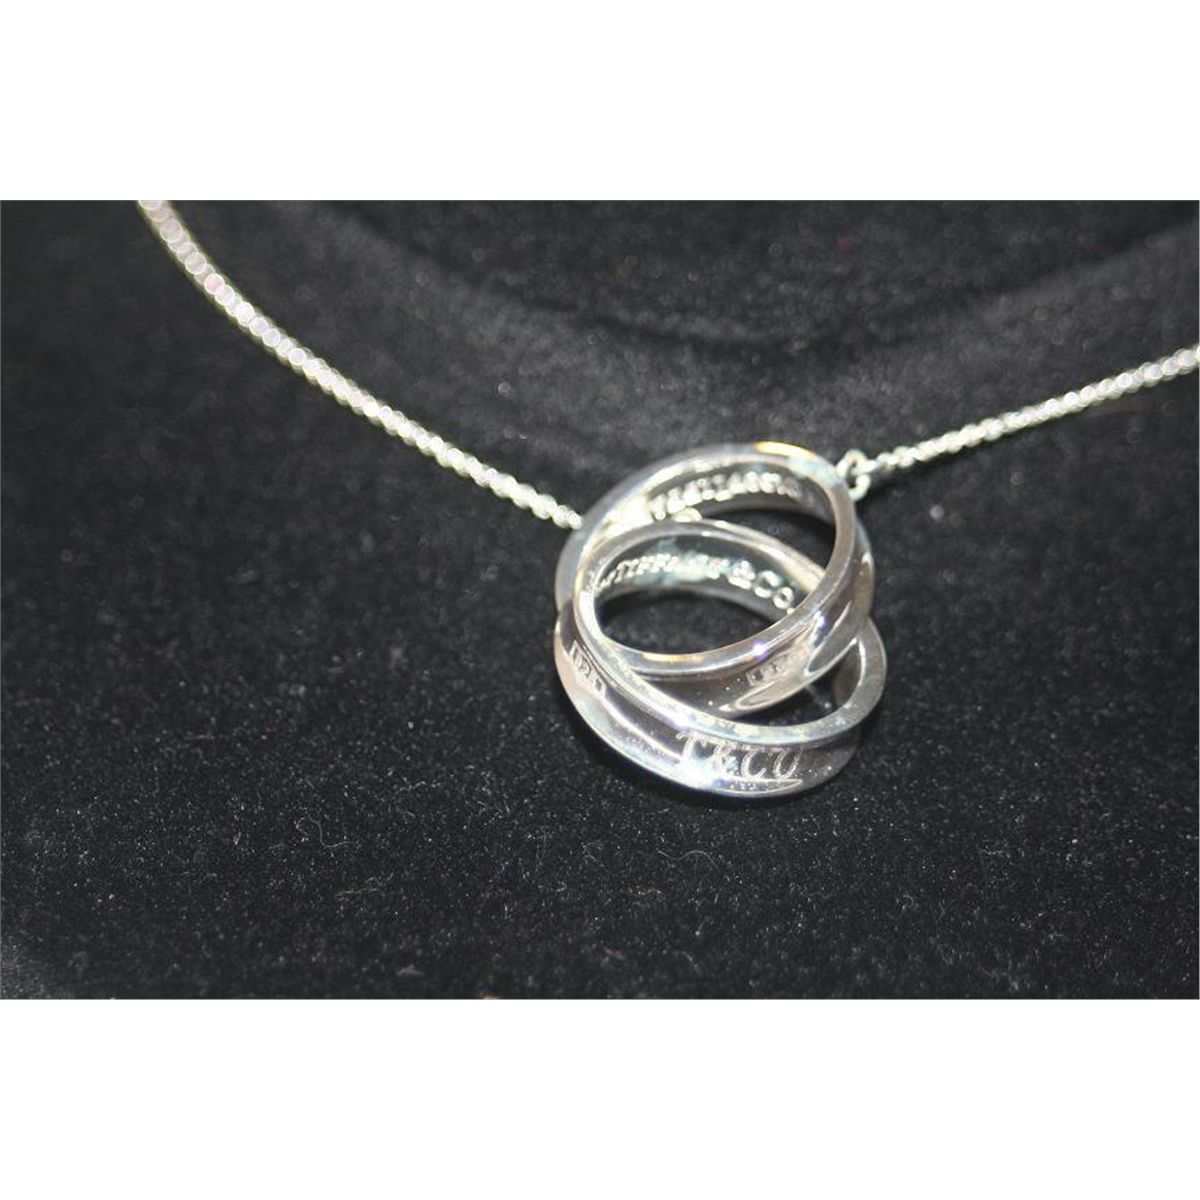 aa11121a2 Tiffany & Co. Beautiful Double Ring Necklace